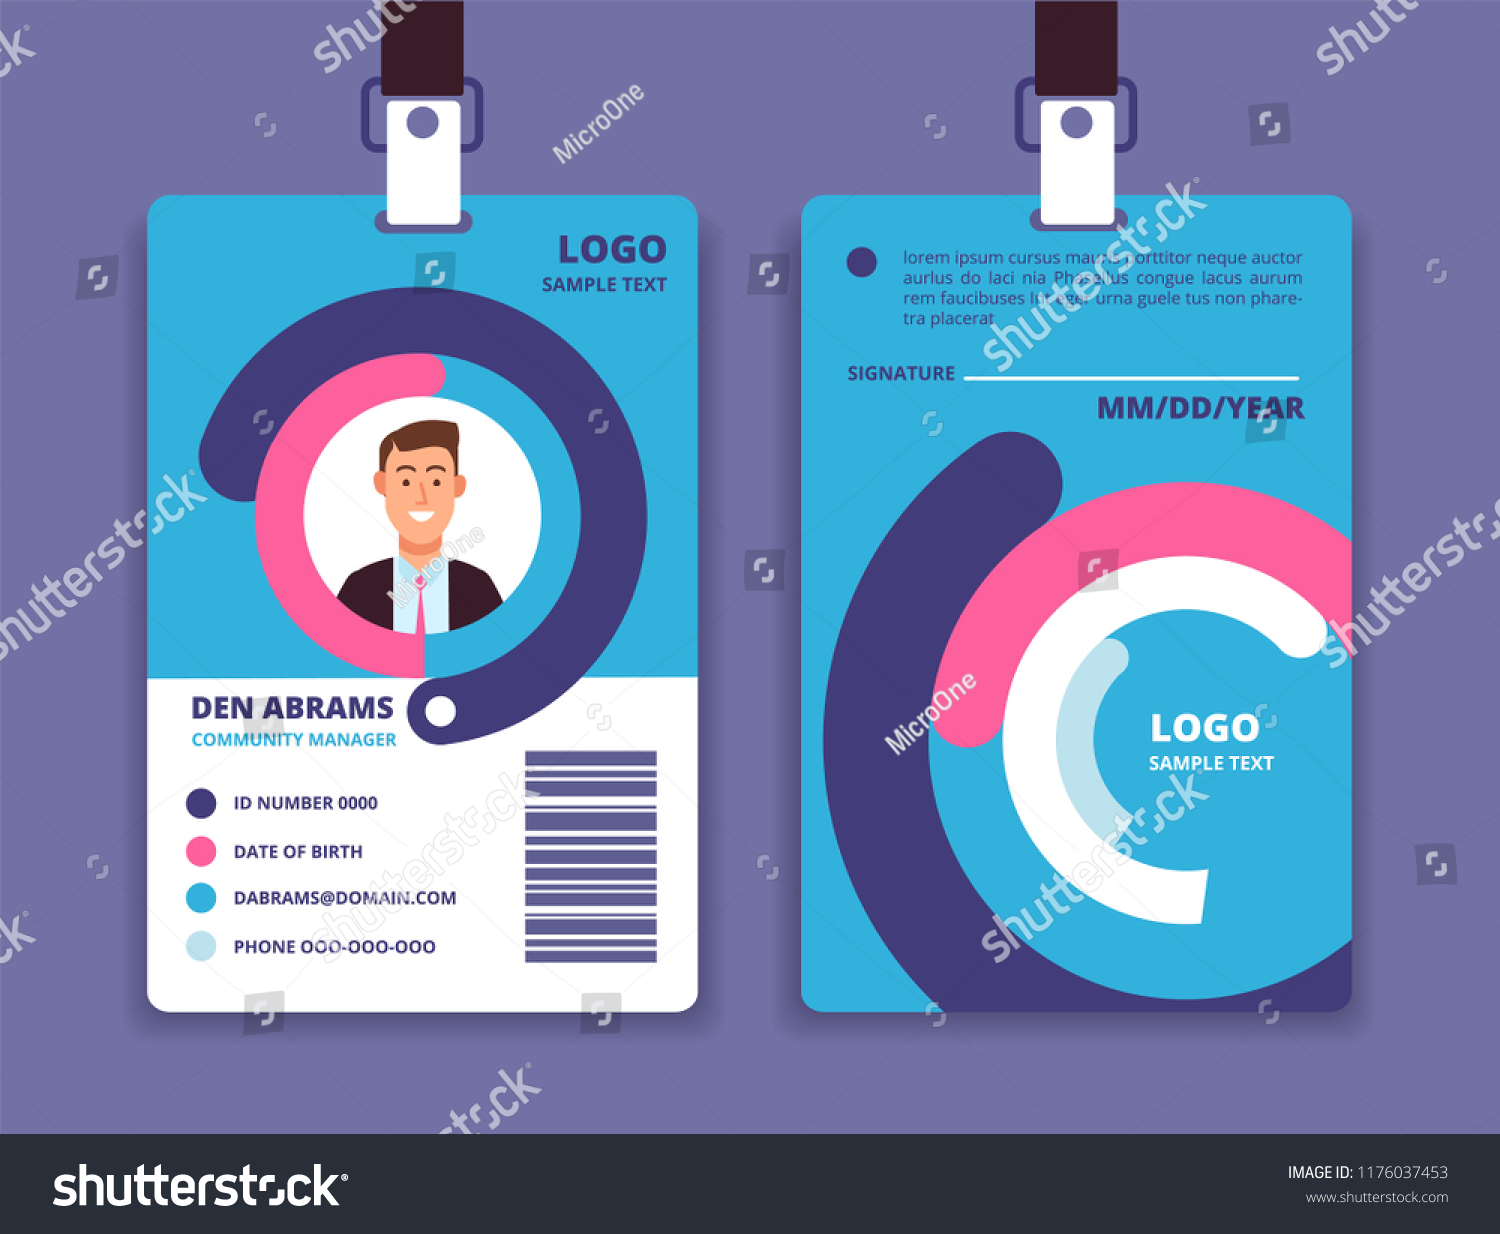 Corporate Id Card Professional Employee Identity Stock Vector Royalty Free 1176037453